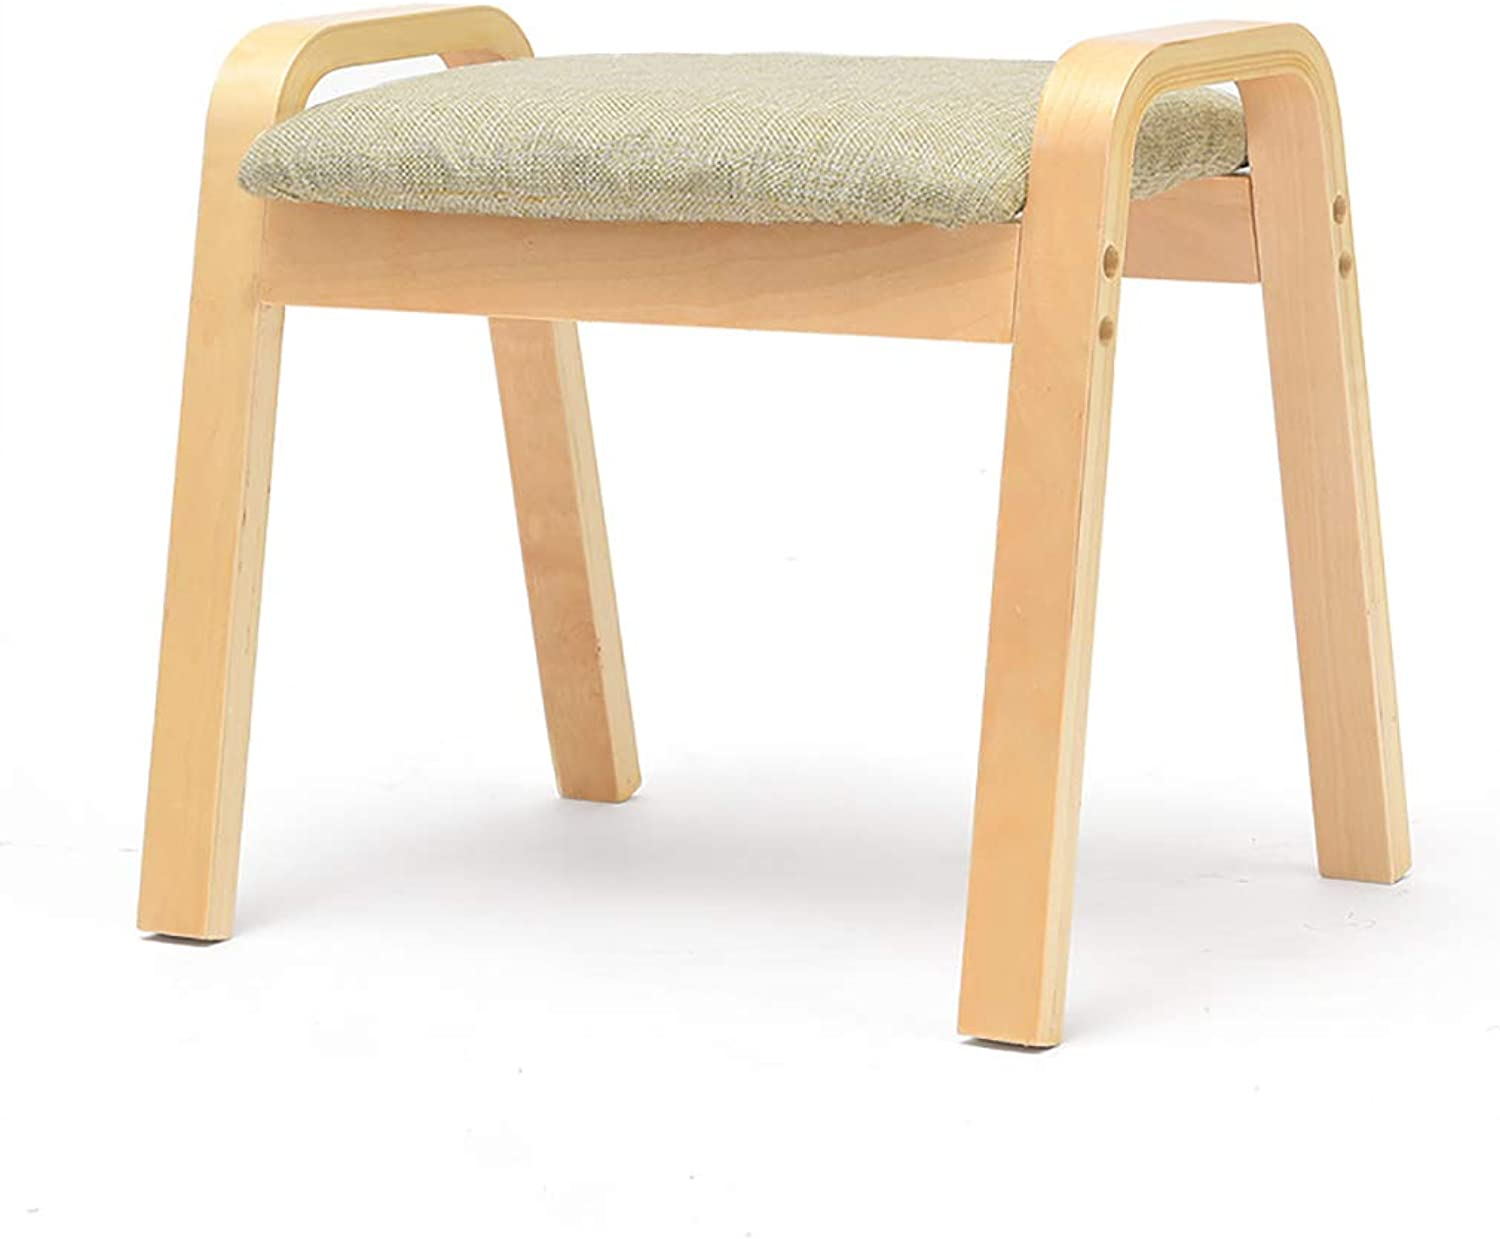 European Chair Change shoes Stool, Fashion Creative Coffee Table Low Stool Sofa Footstool Solid Wood Square Stool (color   H)